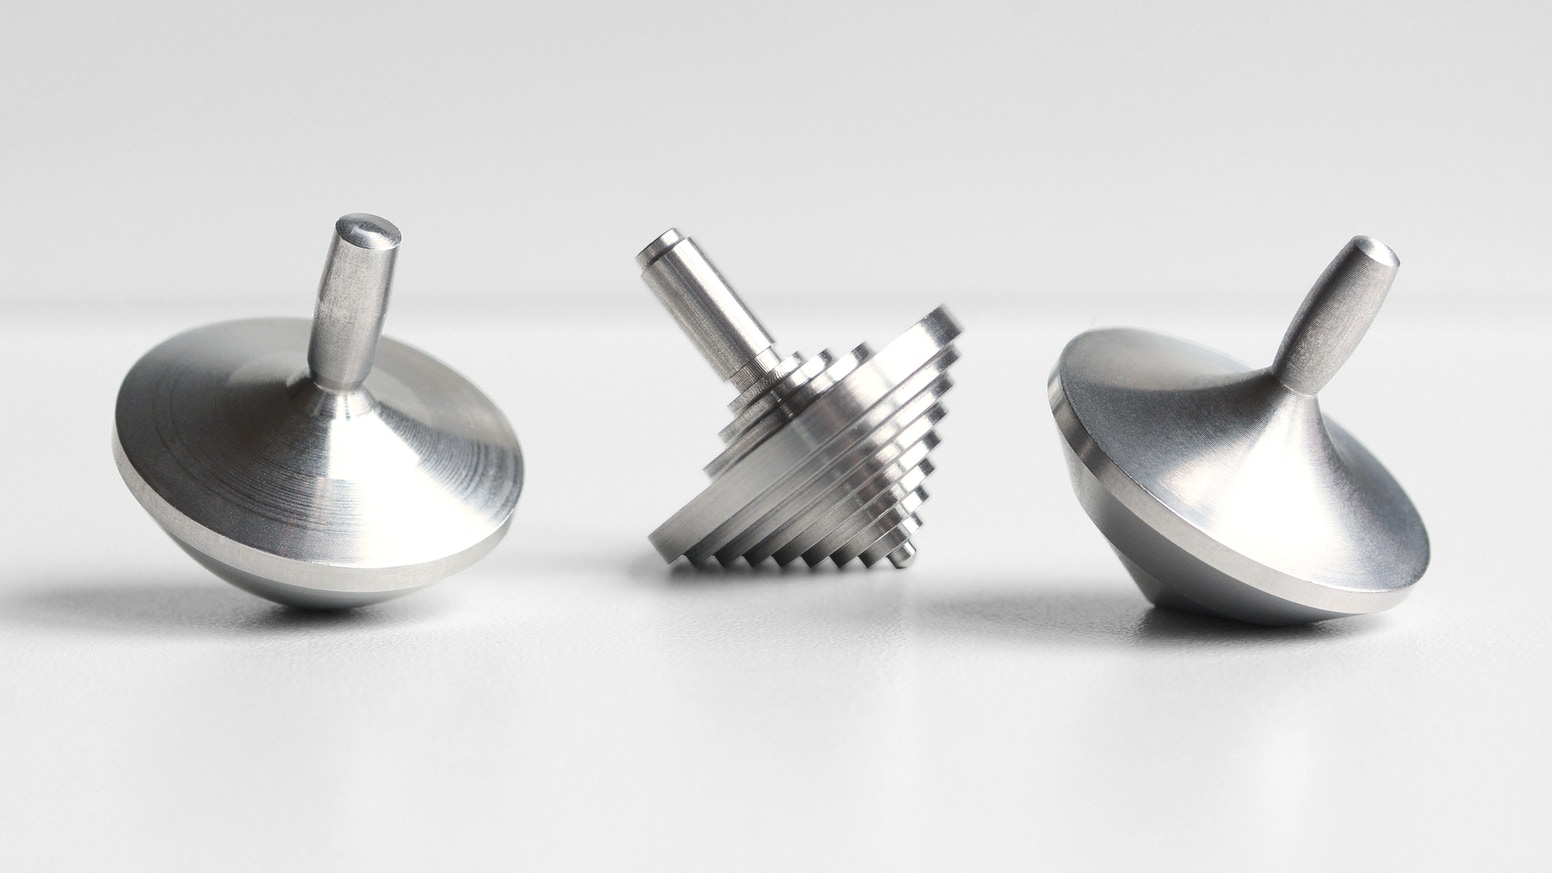 Three artful stainless steel spinning tops, wrapped in a hand-crafted leather case.